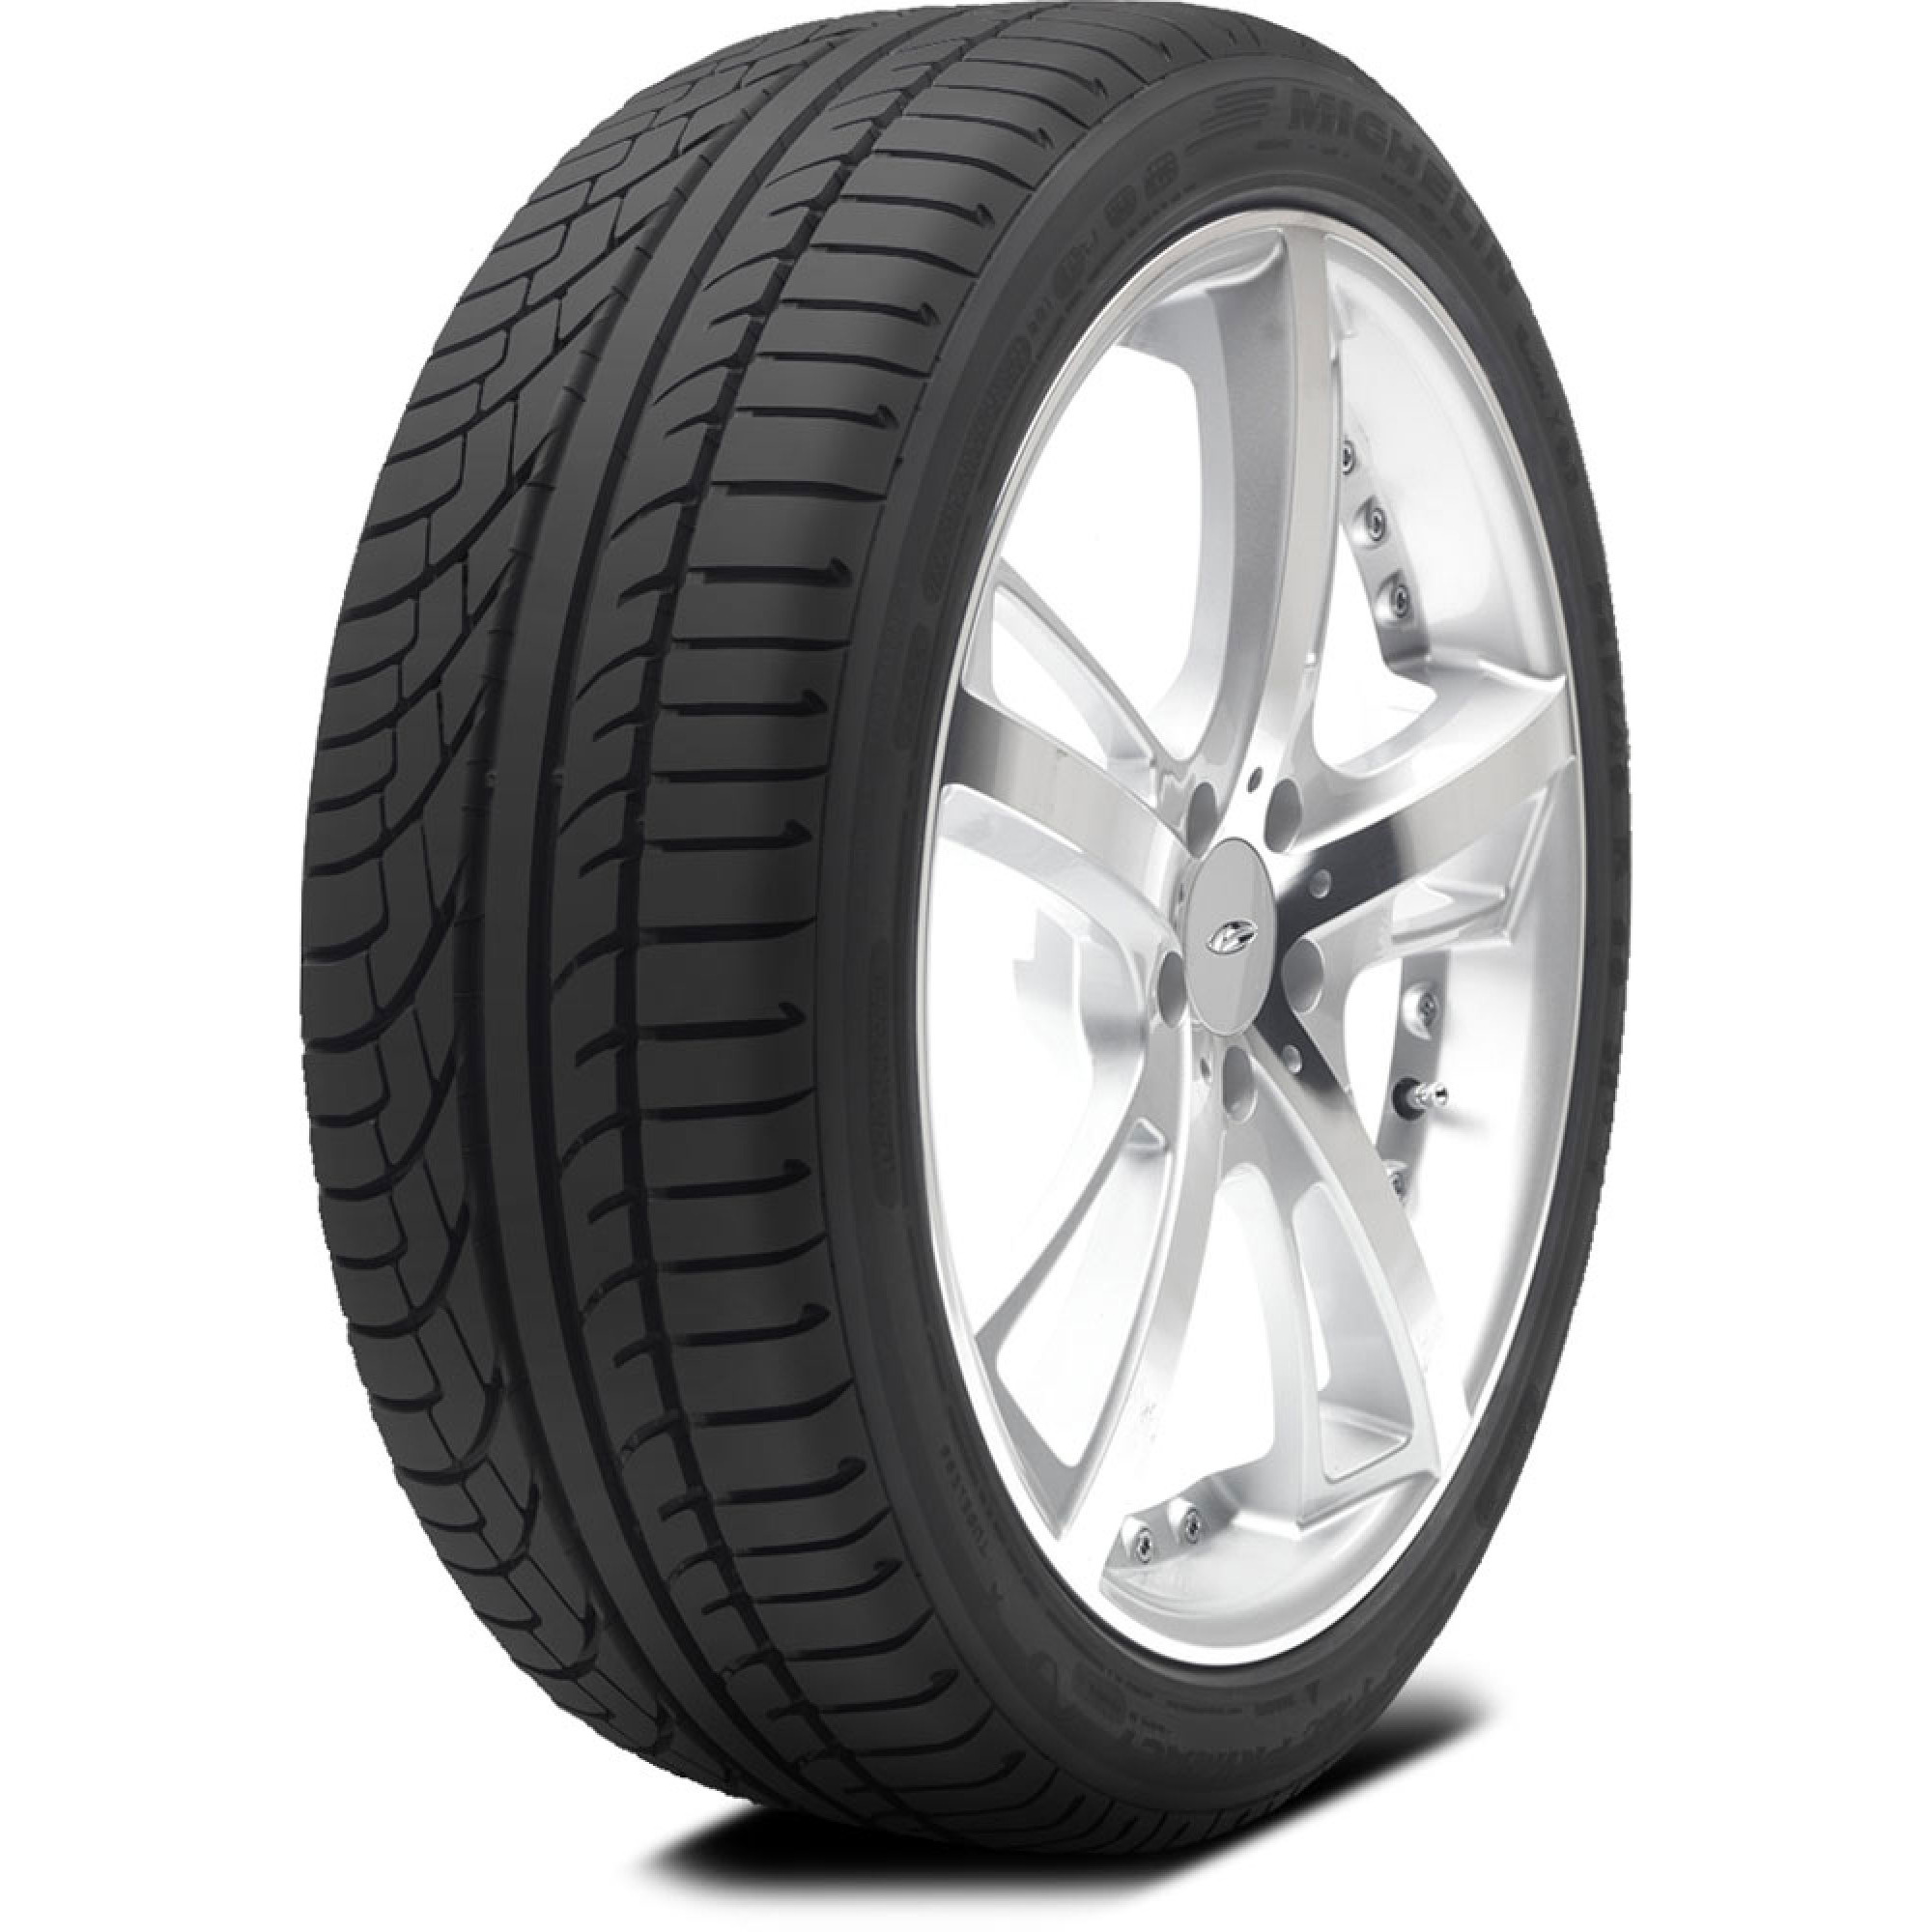 Tire rack coupon code